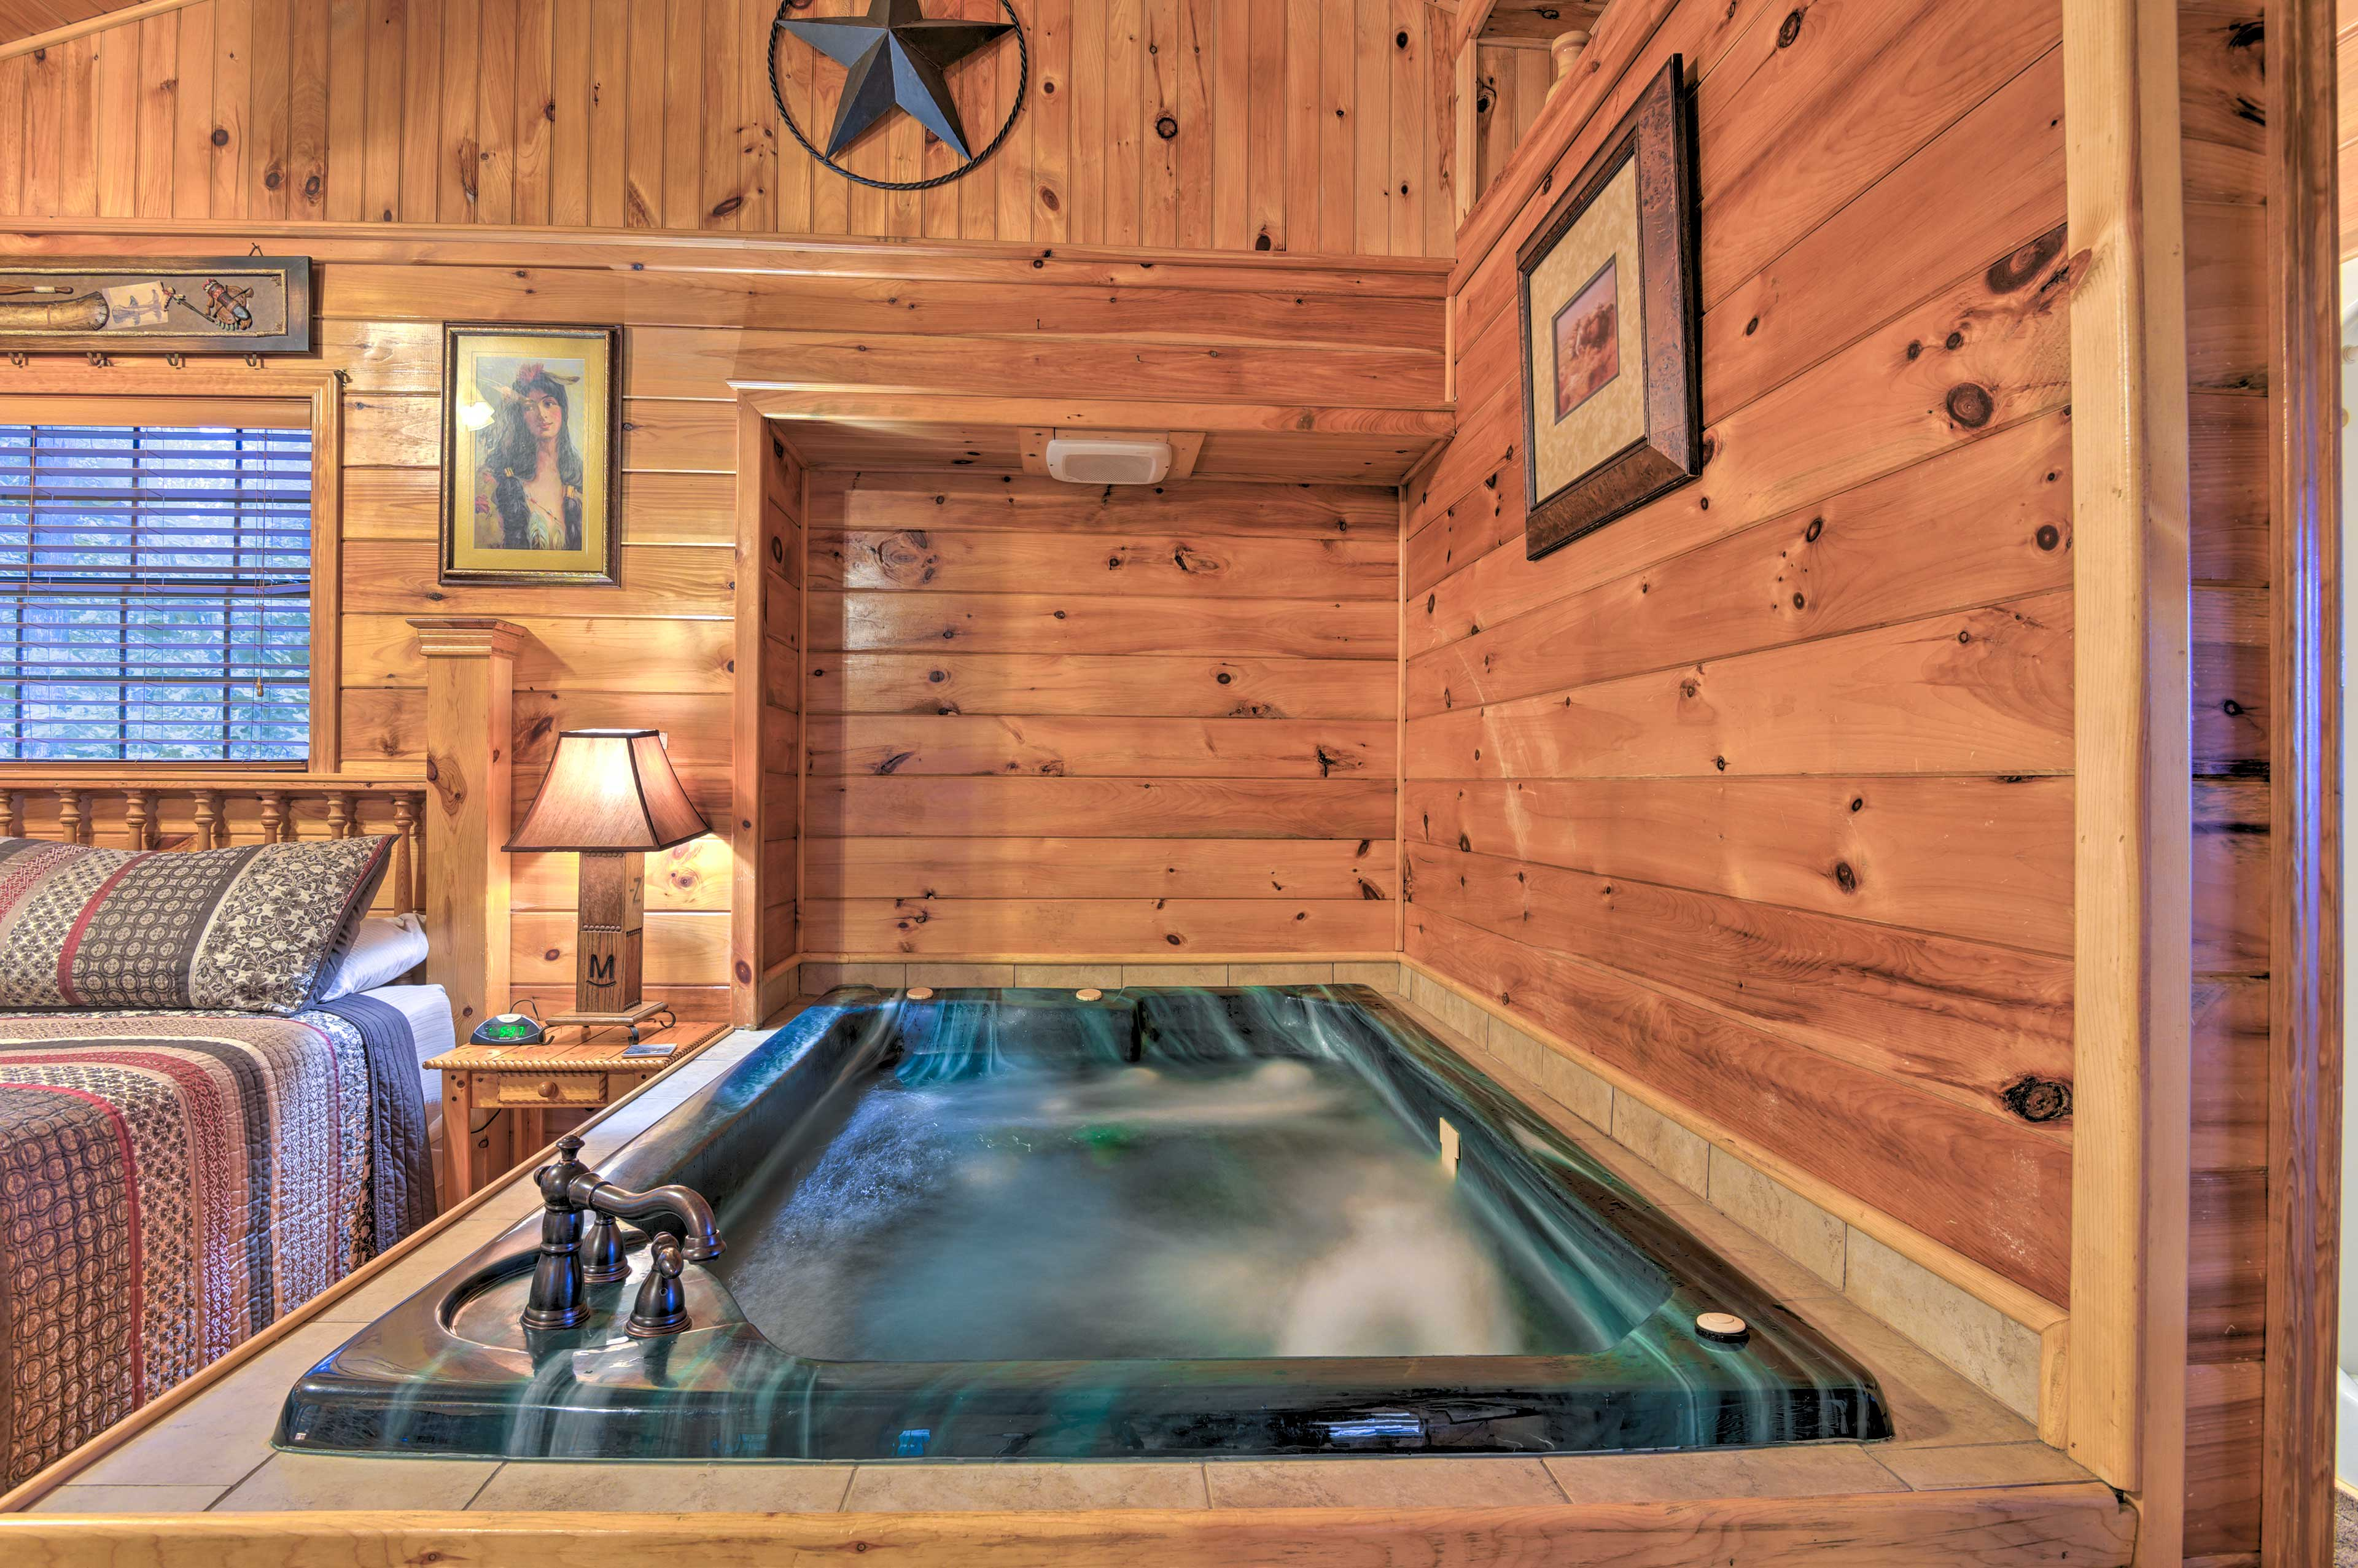 Before calling it a night, go for a dip in the indoor hot tub!